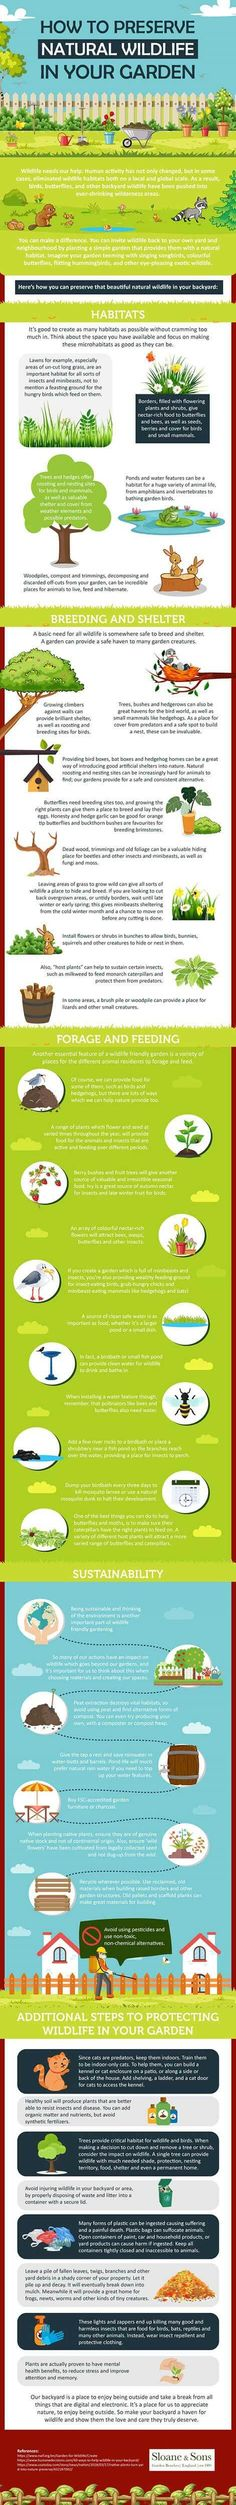 This infographic explains simple tips and tricks that you can implement in your garden to preserve wildlife habitats. Food Dog, Pet Food Storage, Dog Pads, Small Insects, Unusual Animals, Pet Furniture, Cool Pets, Diy Stuffed Animals, Pet Accessories